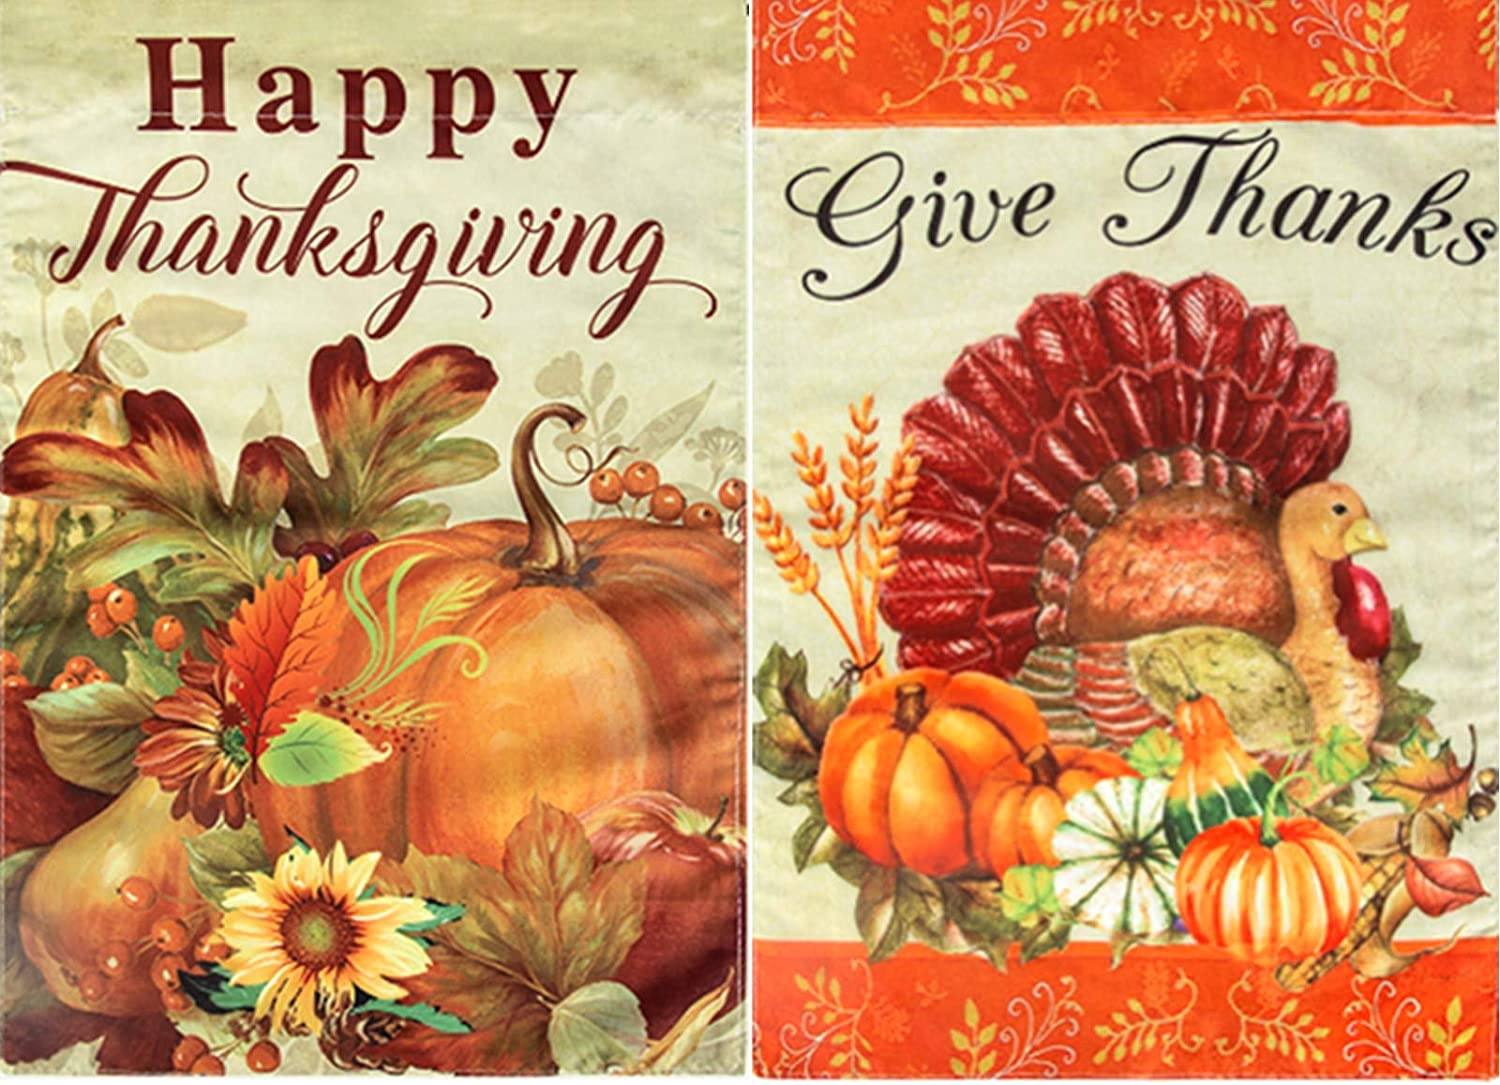 2 Pcs Thanksgiving Garden Flag Turkey Pumpkin Give Thanks Fall Garden Flag Outdoor Home Decorative Flag 12.5 x 18